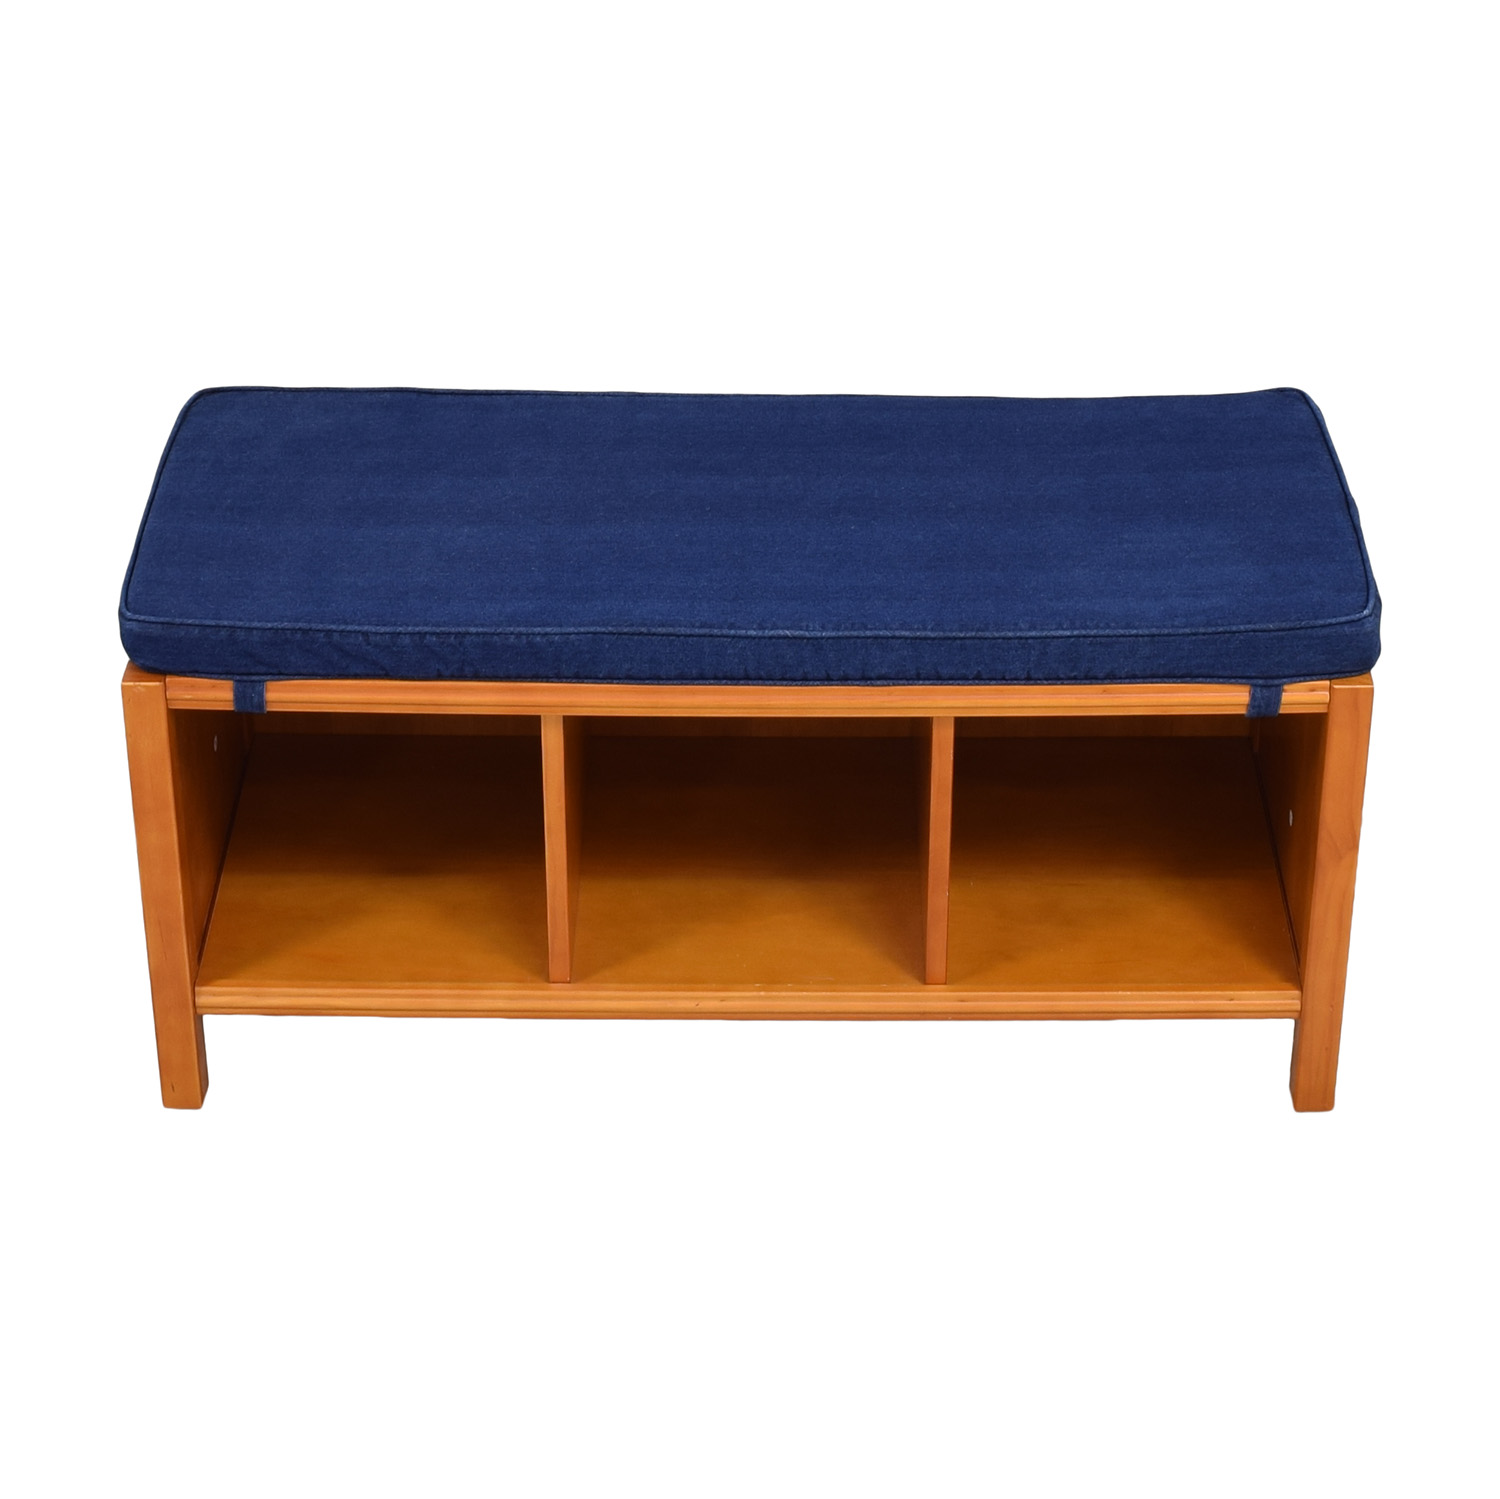 Land of Nod The Land of Nod Three Cube Bench with Cushion for sale